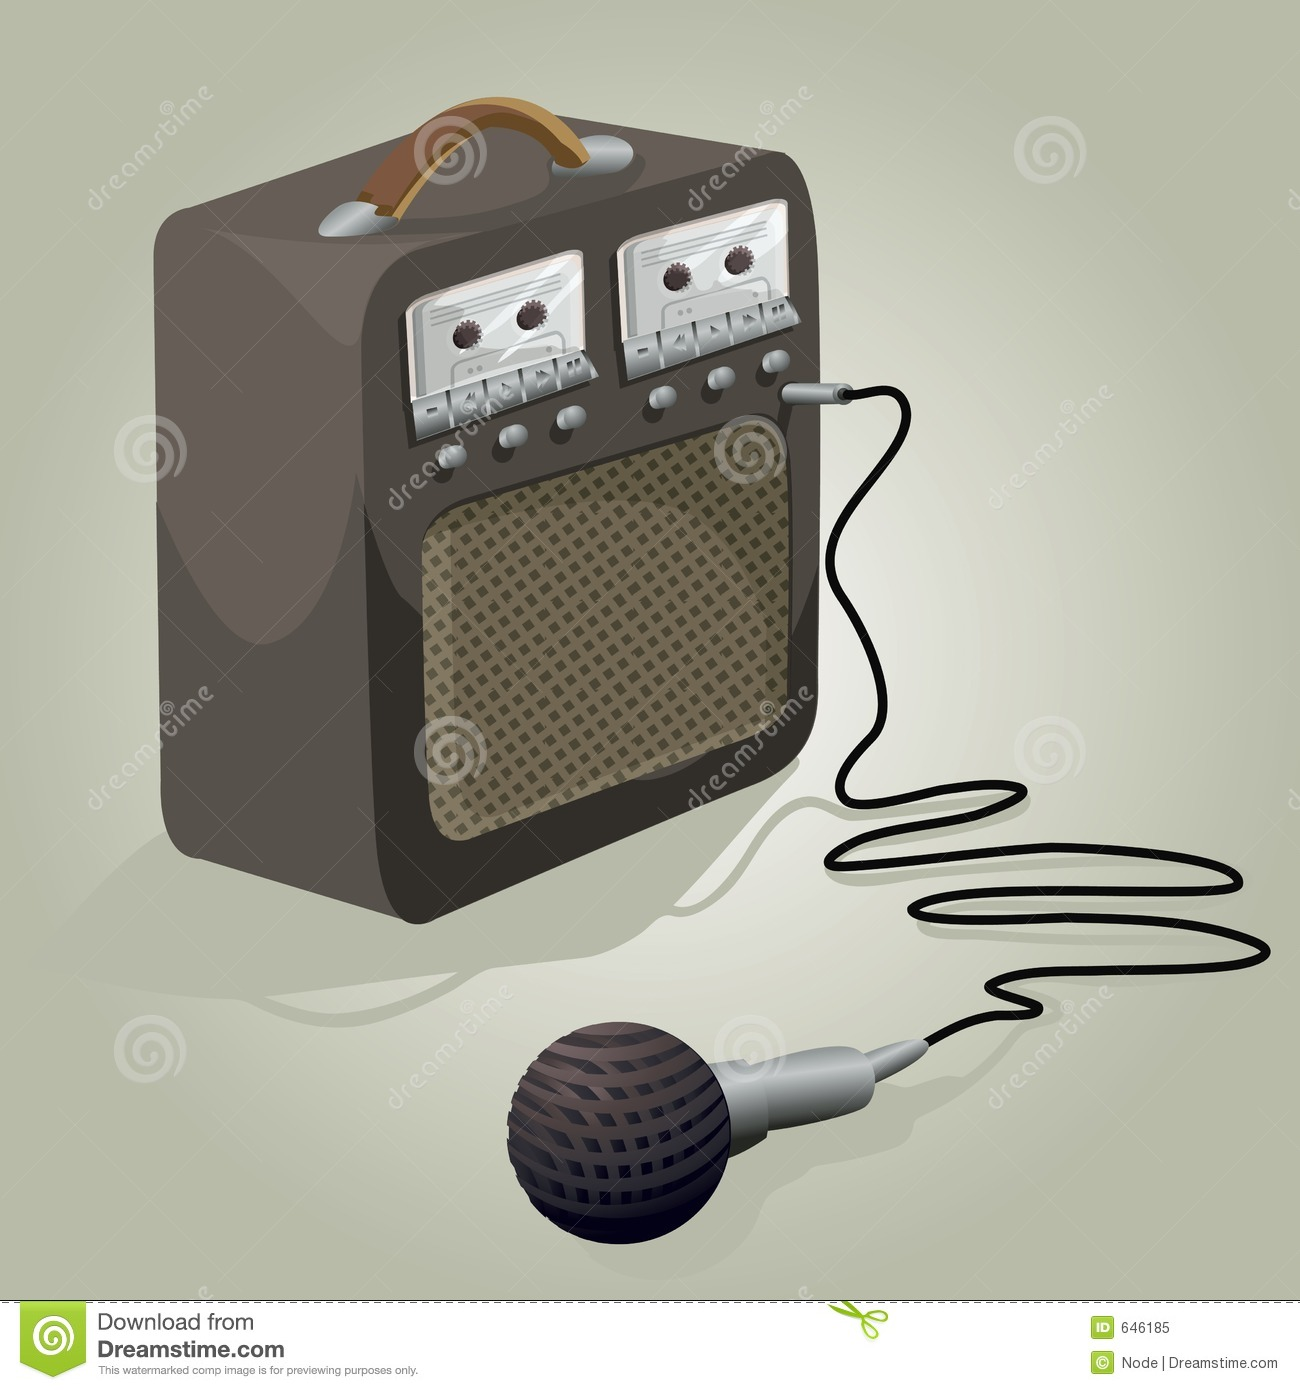 Karaoke Machine Illustration With Clipping Path